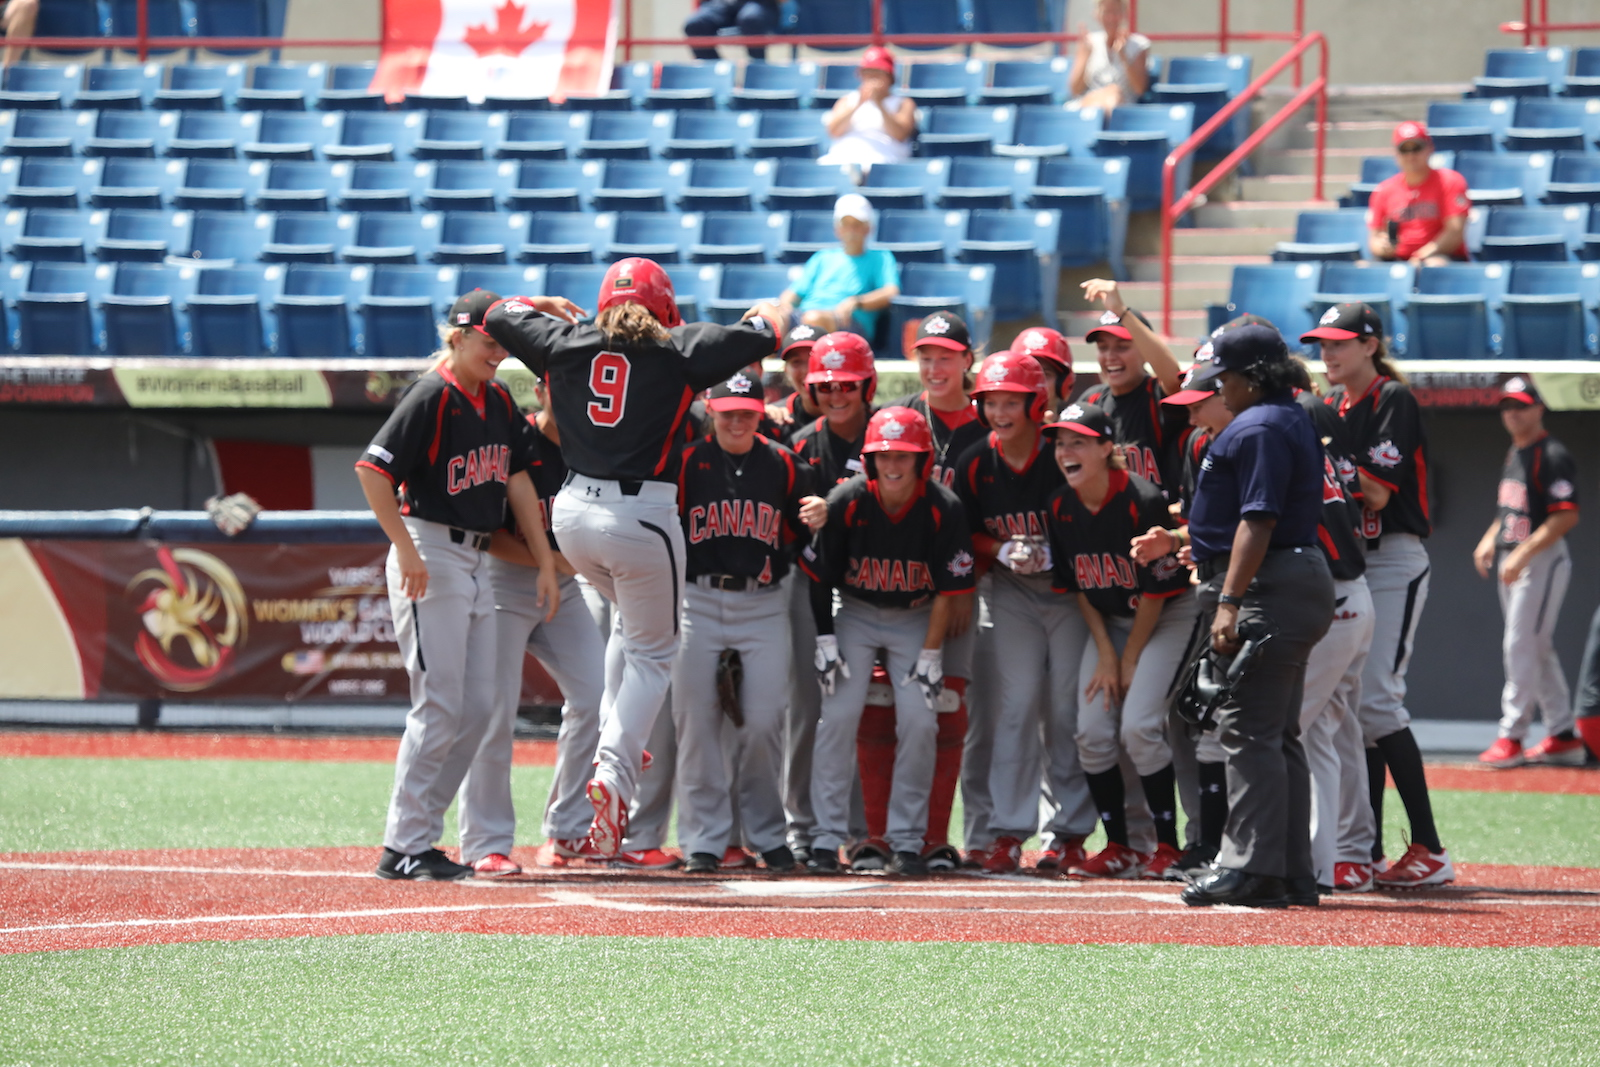 Women's Baseball World Cup: CANADA WINS BRONZE!